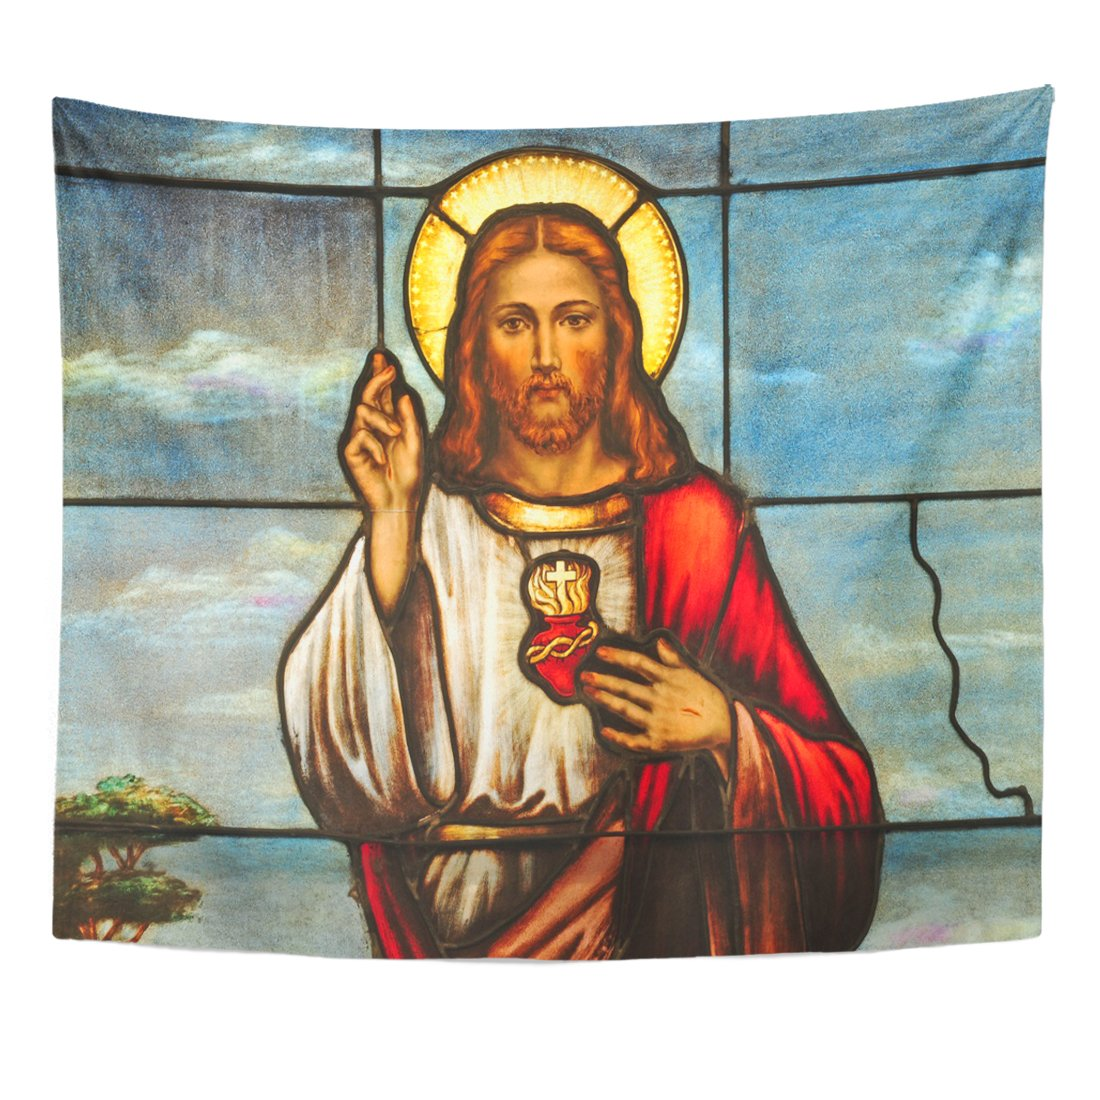 VaryHome Tapestry Christ Stained Glass Window Depicting Sacred Heart of Jesus Christian Messiah Home Decor Wall Hanging for Living Room Bedroom Dorm 50x60 Inches by VaryHome